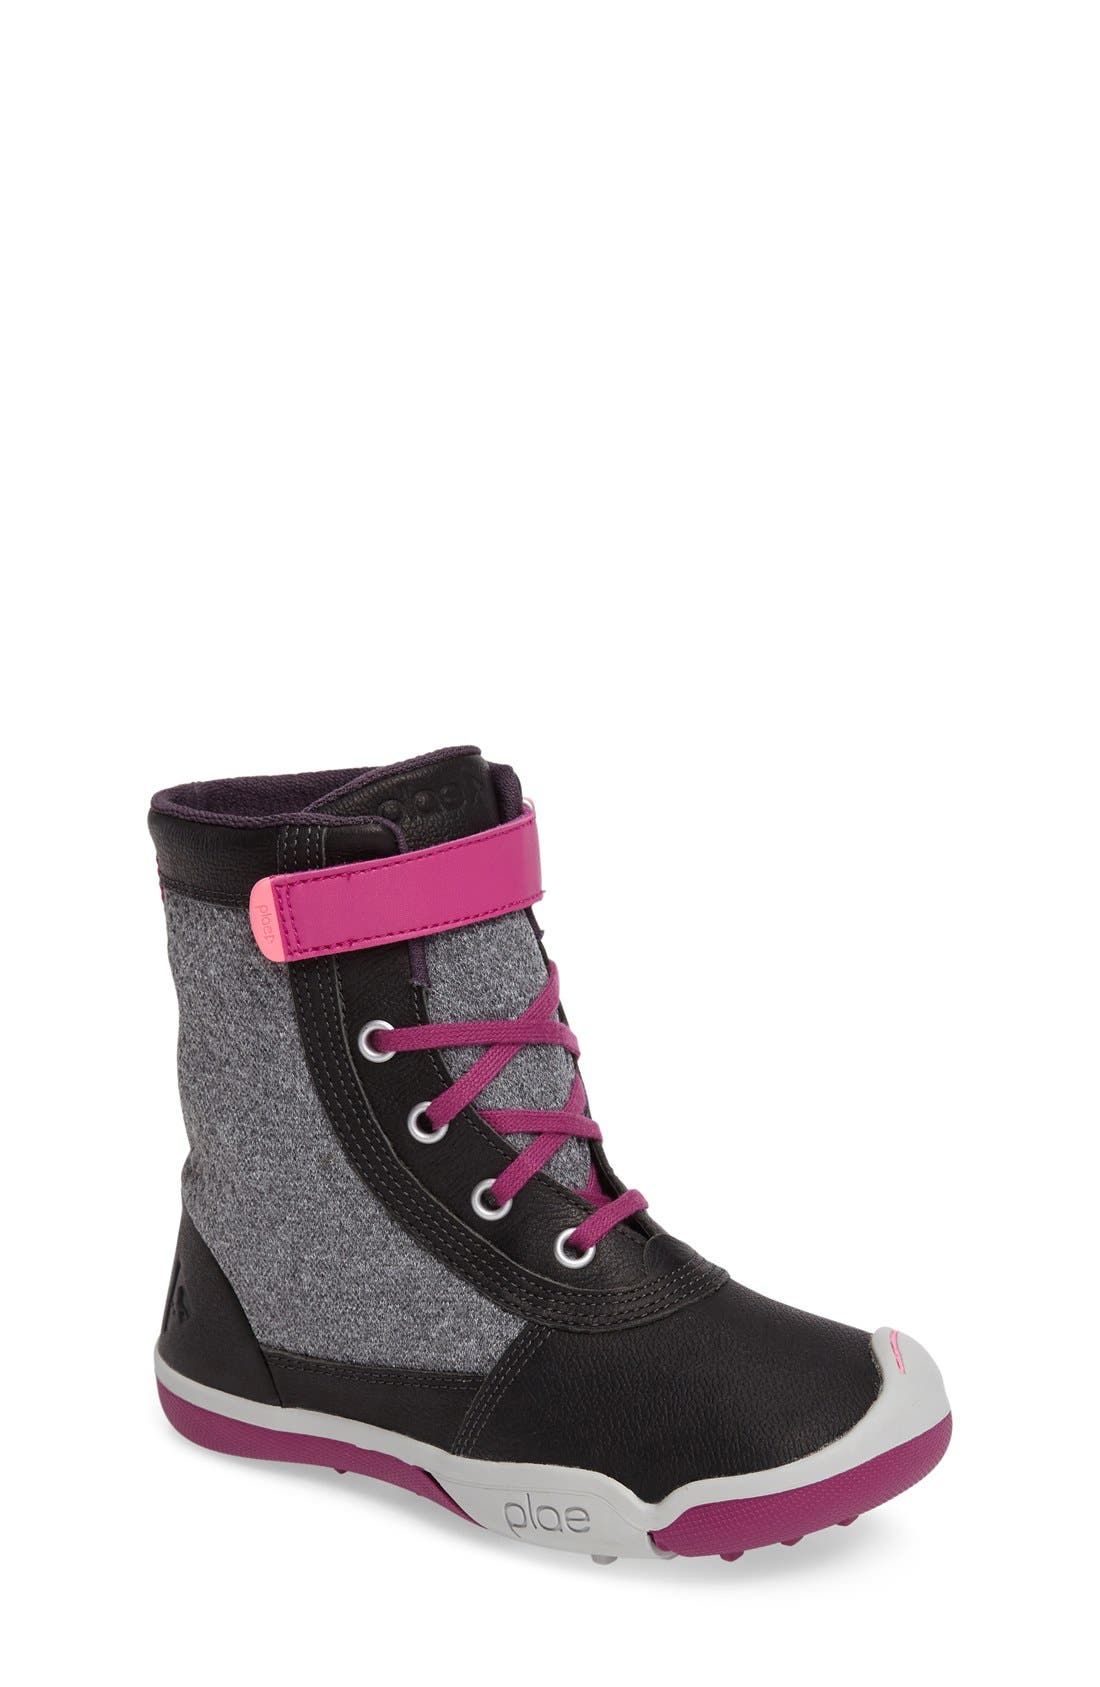 'Noel Customiz' Boot,                         Main,                         color, Black/ Grey Leather